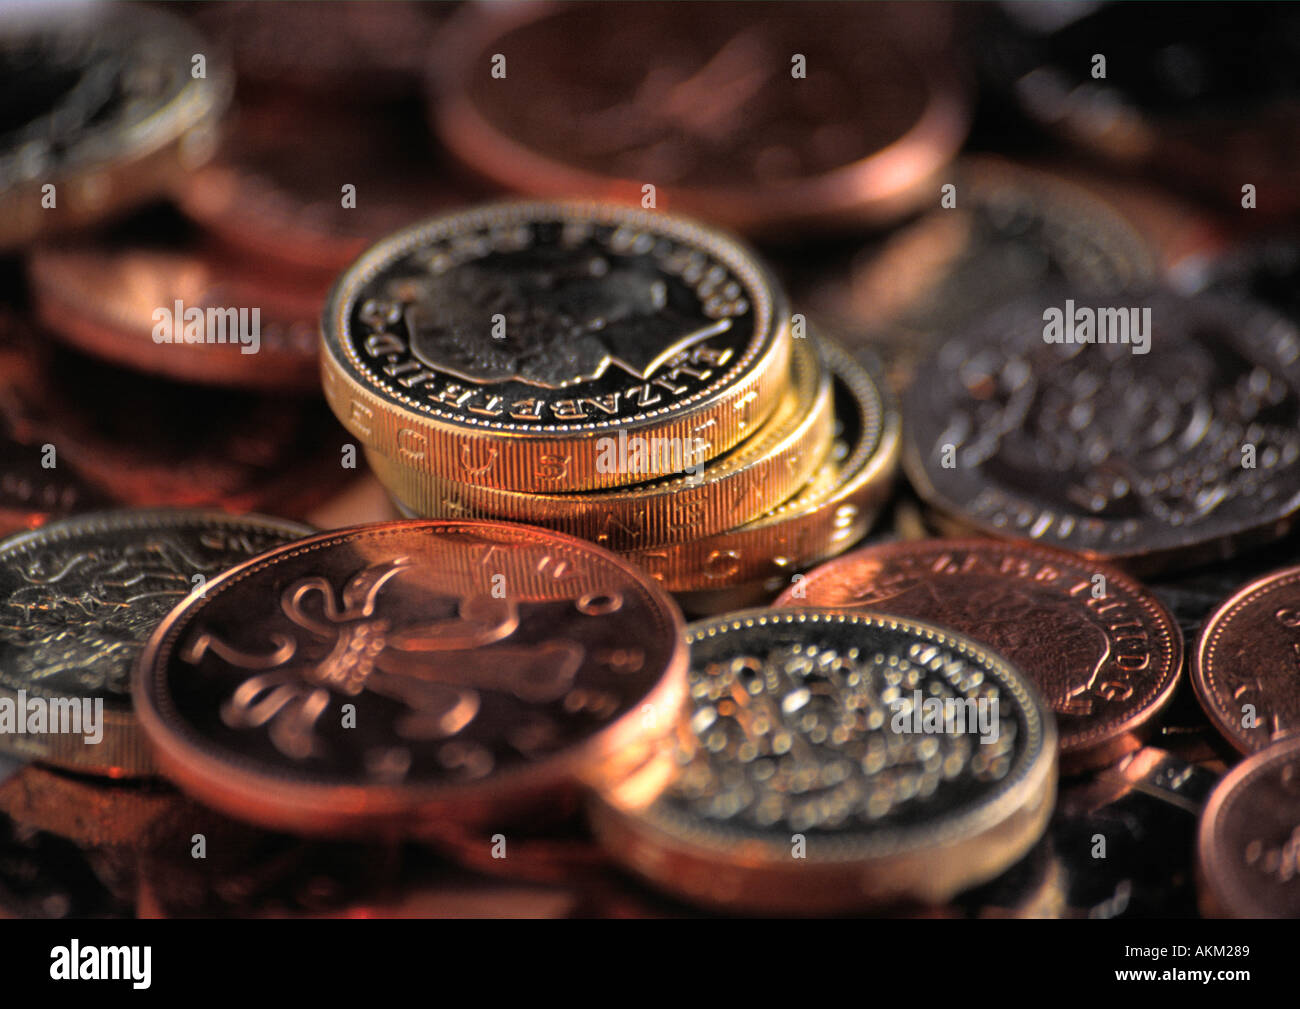 Sterling coins in close up - Stock Image